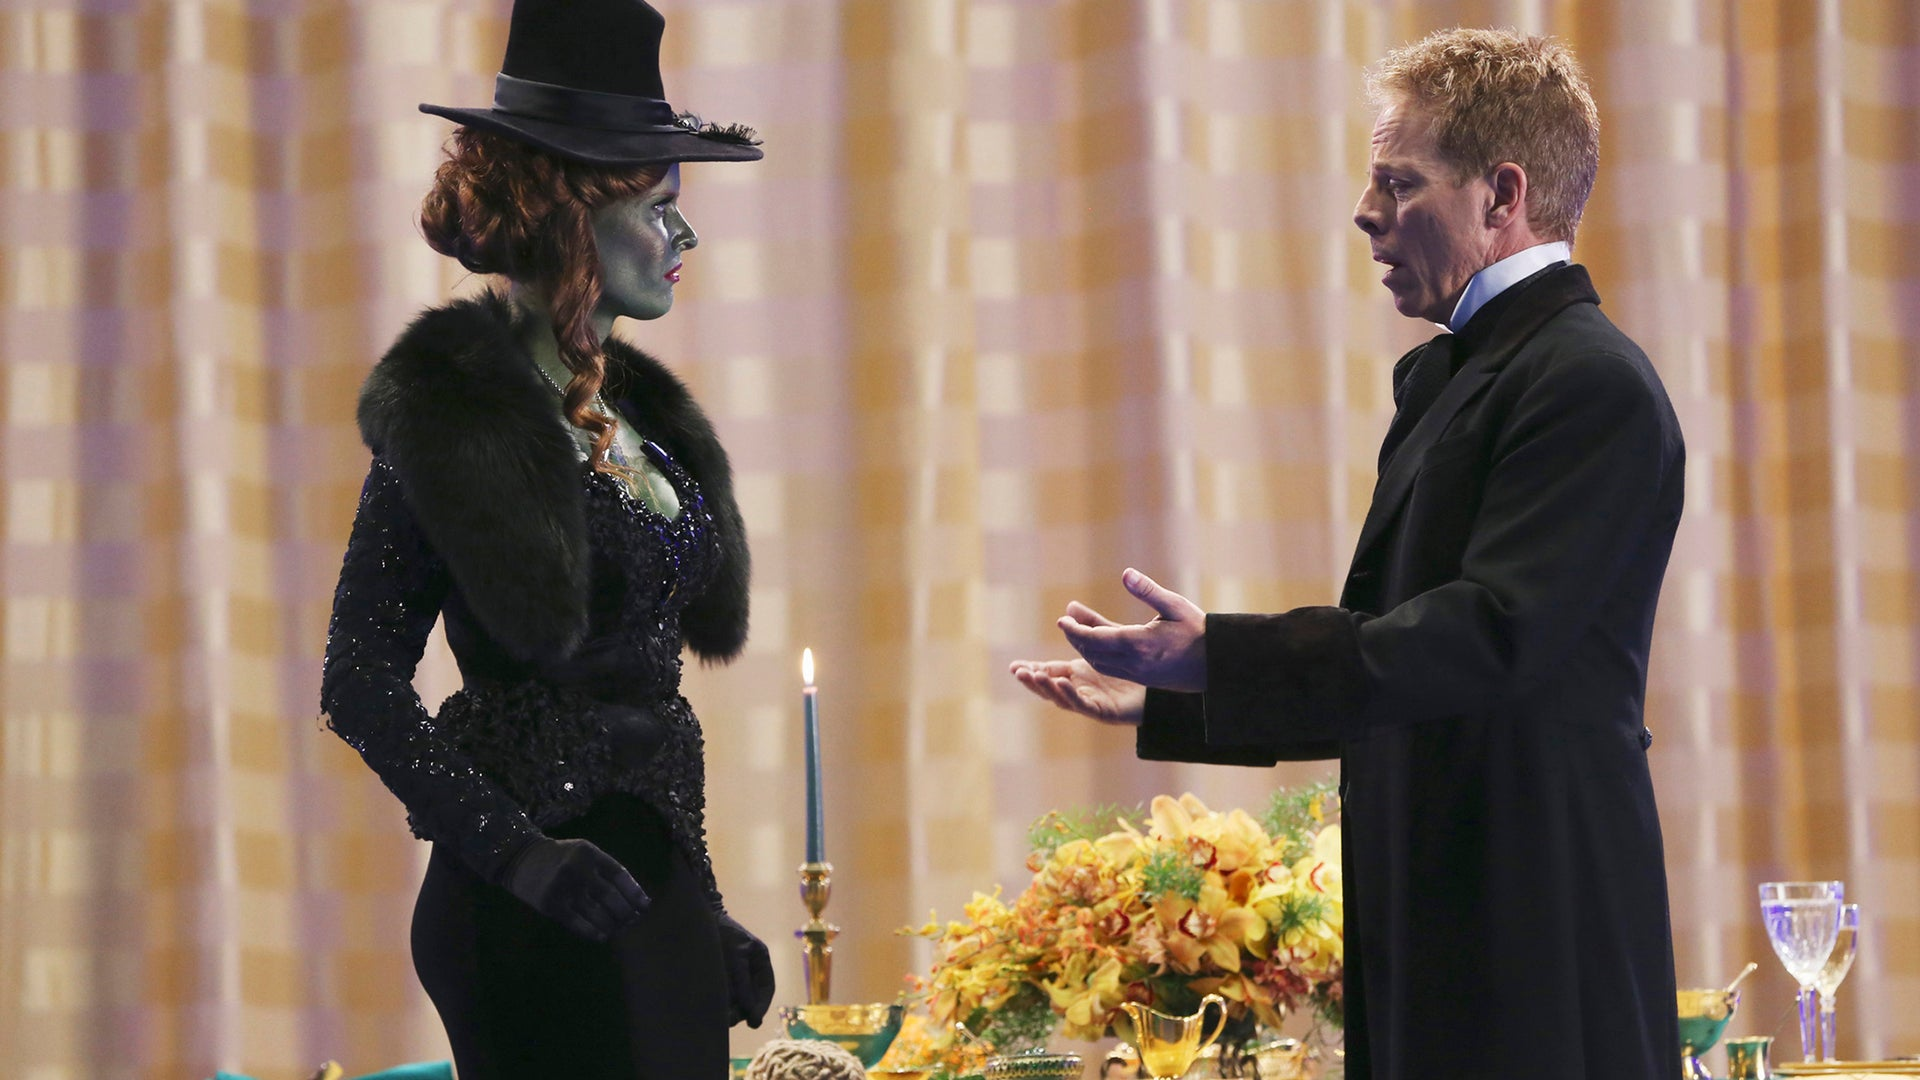 Rebecca Mader and Greg Germann, Once Upon a Time